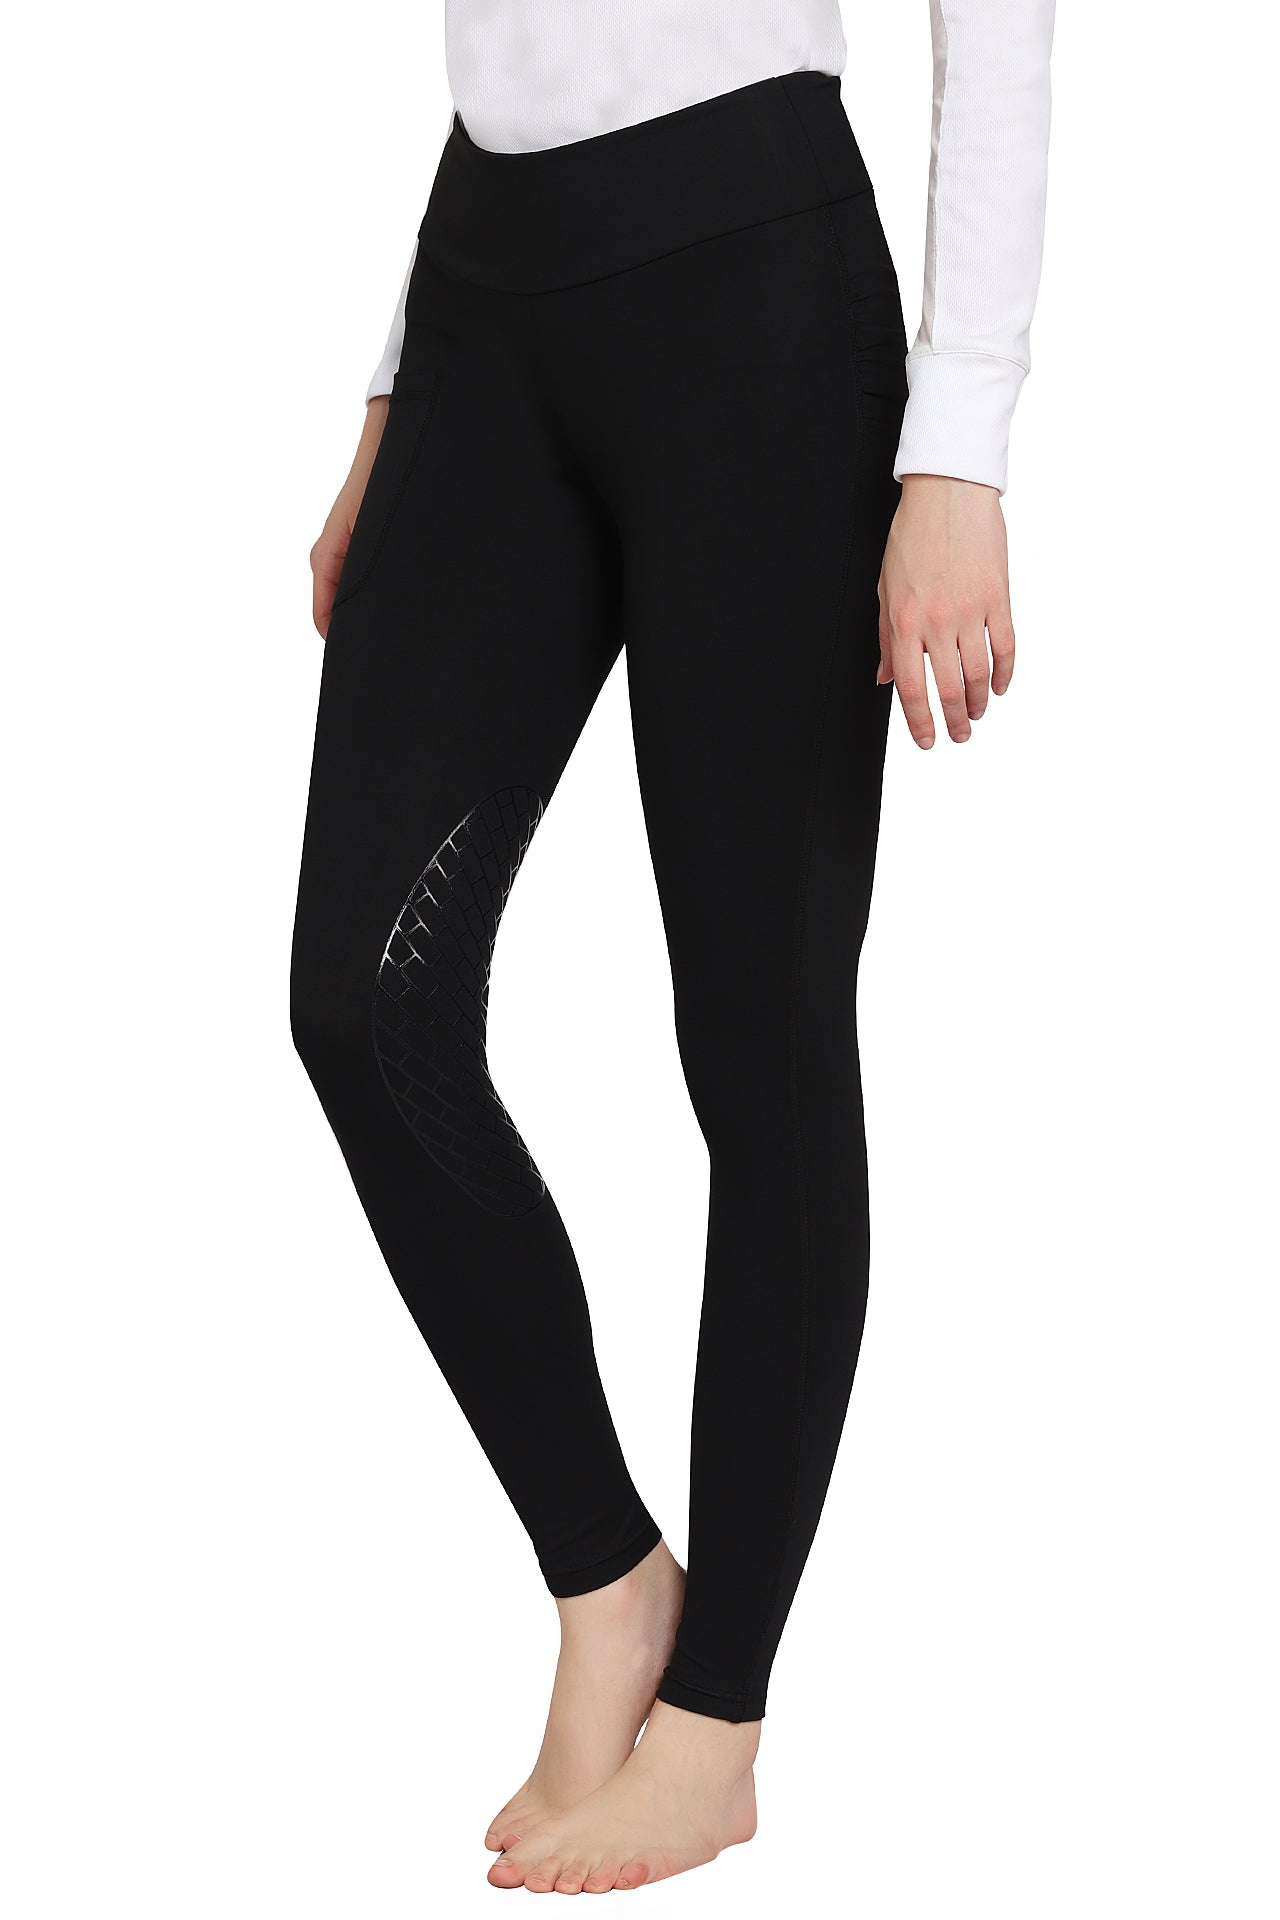 TuffRider Ladies Bootie Tights w/ Pocket - TuffRider - Breeches.com